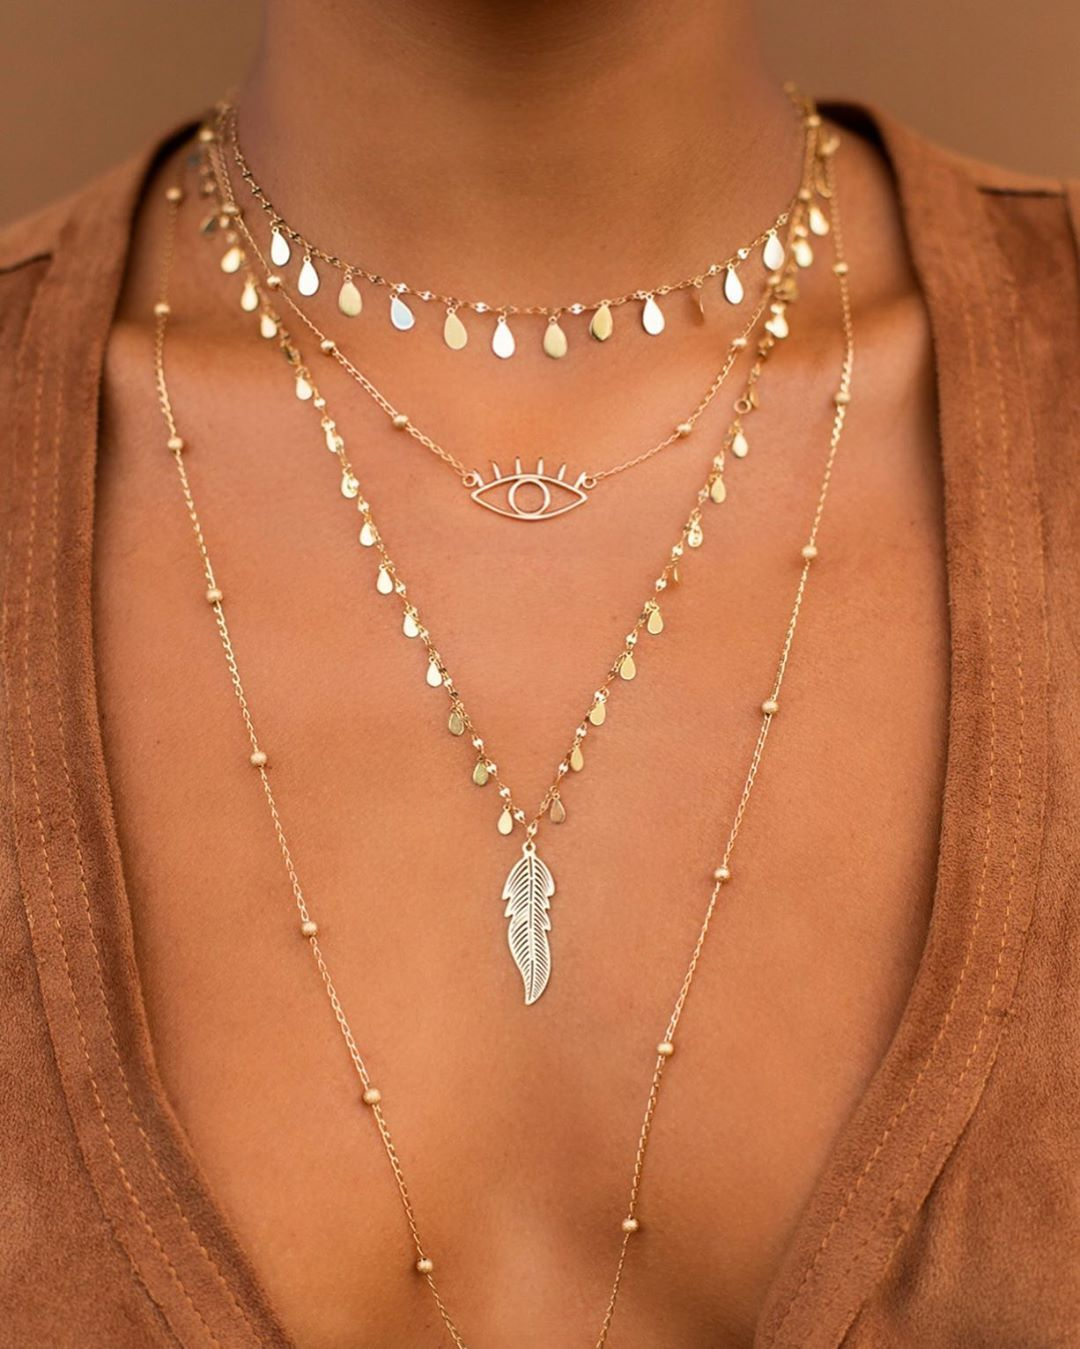 Minimalist Silver Hollow Leaves Pendant Chain Collar Necklace Women Chic Jewelry